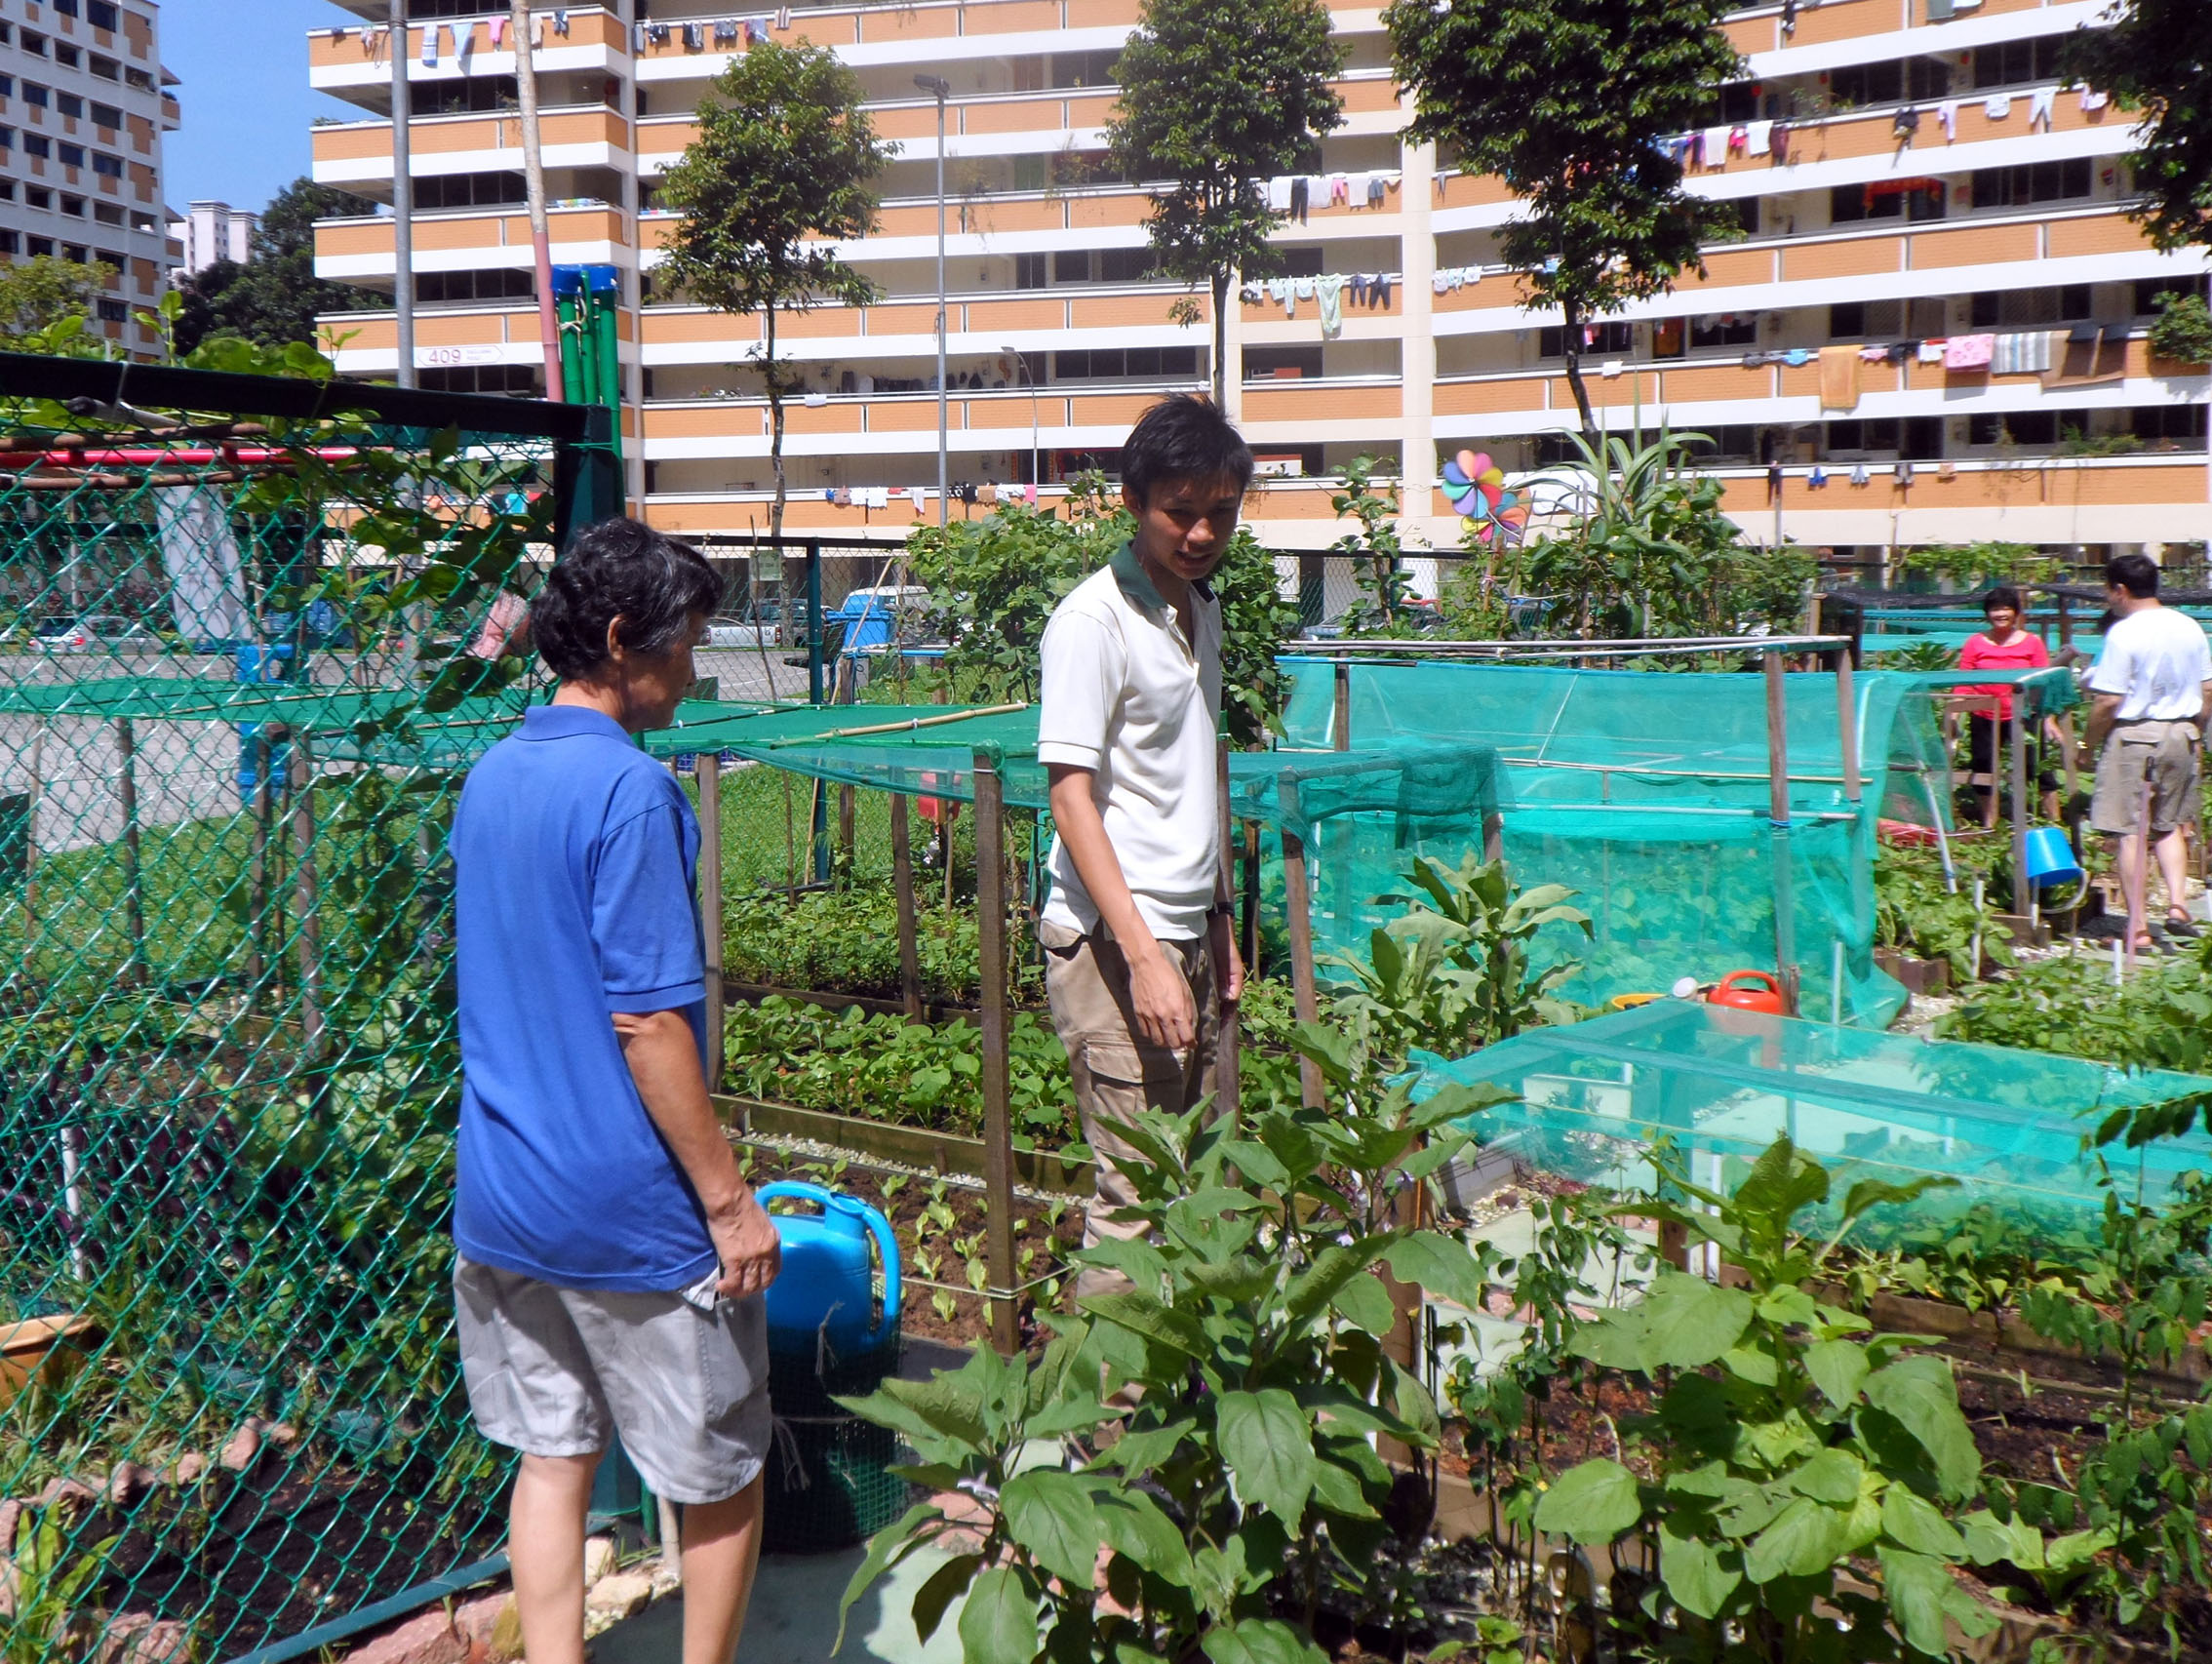 Promoting Community Gardening Is His Passion